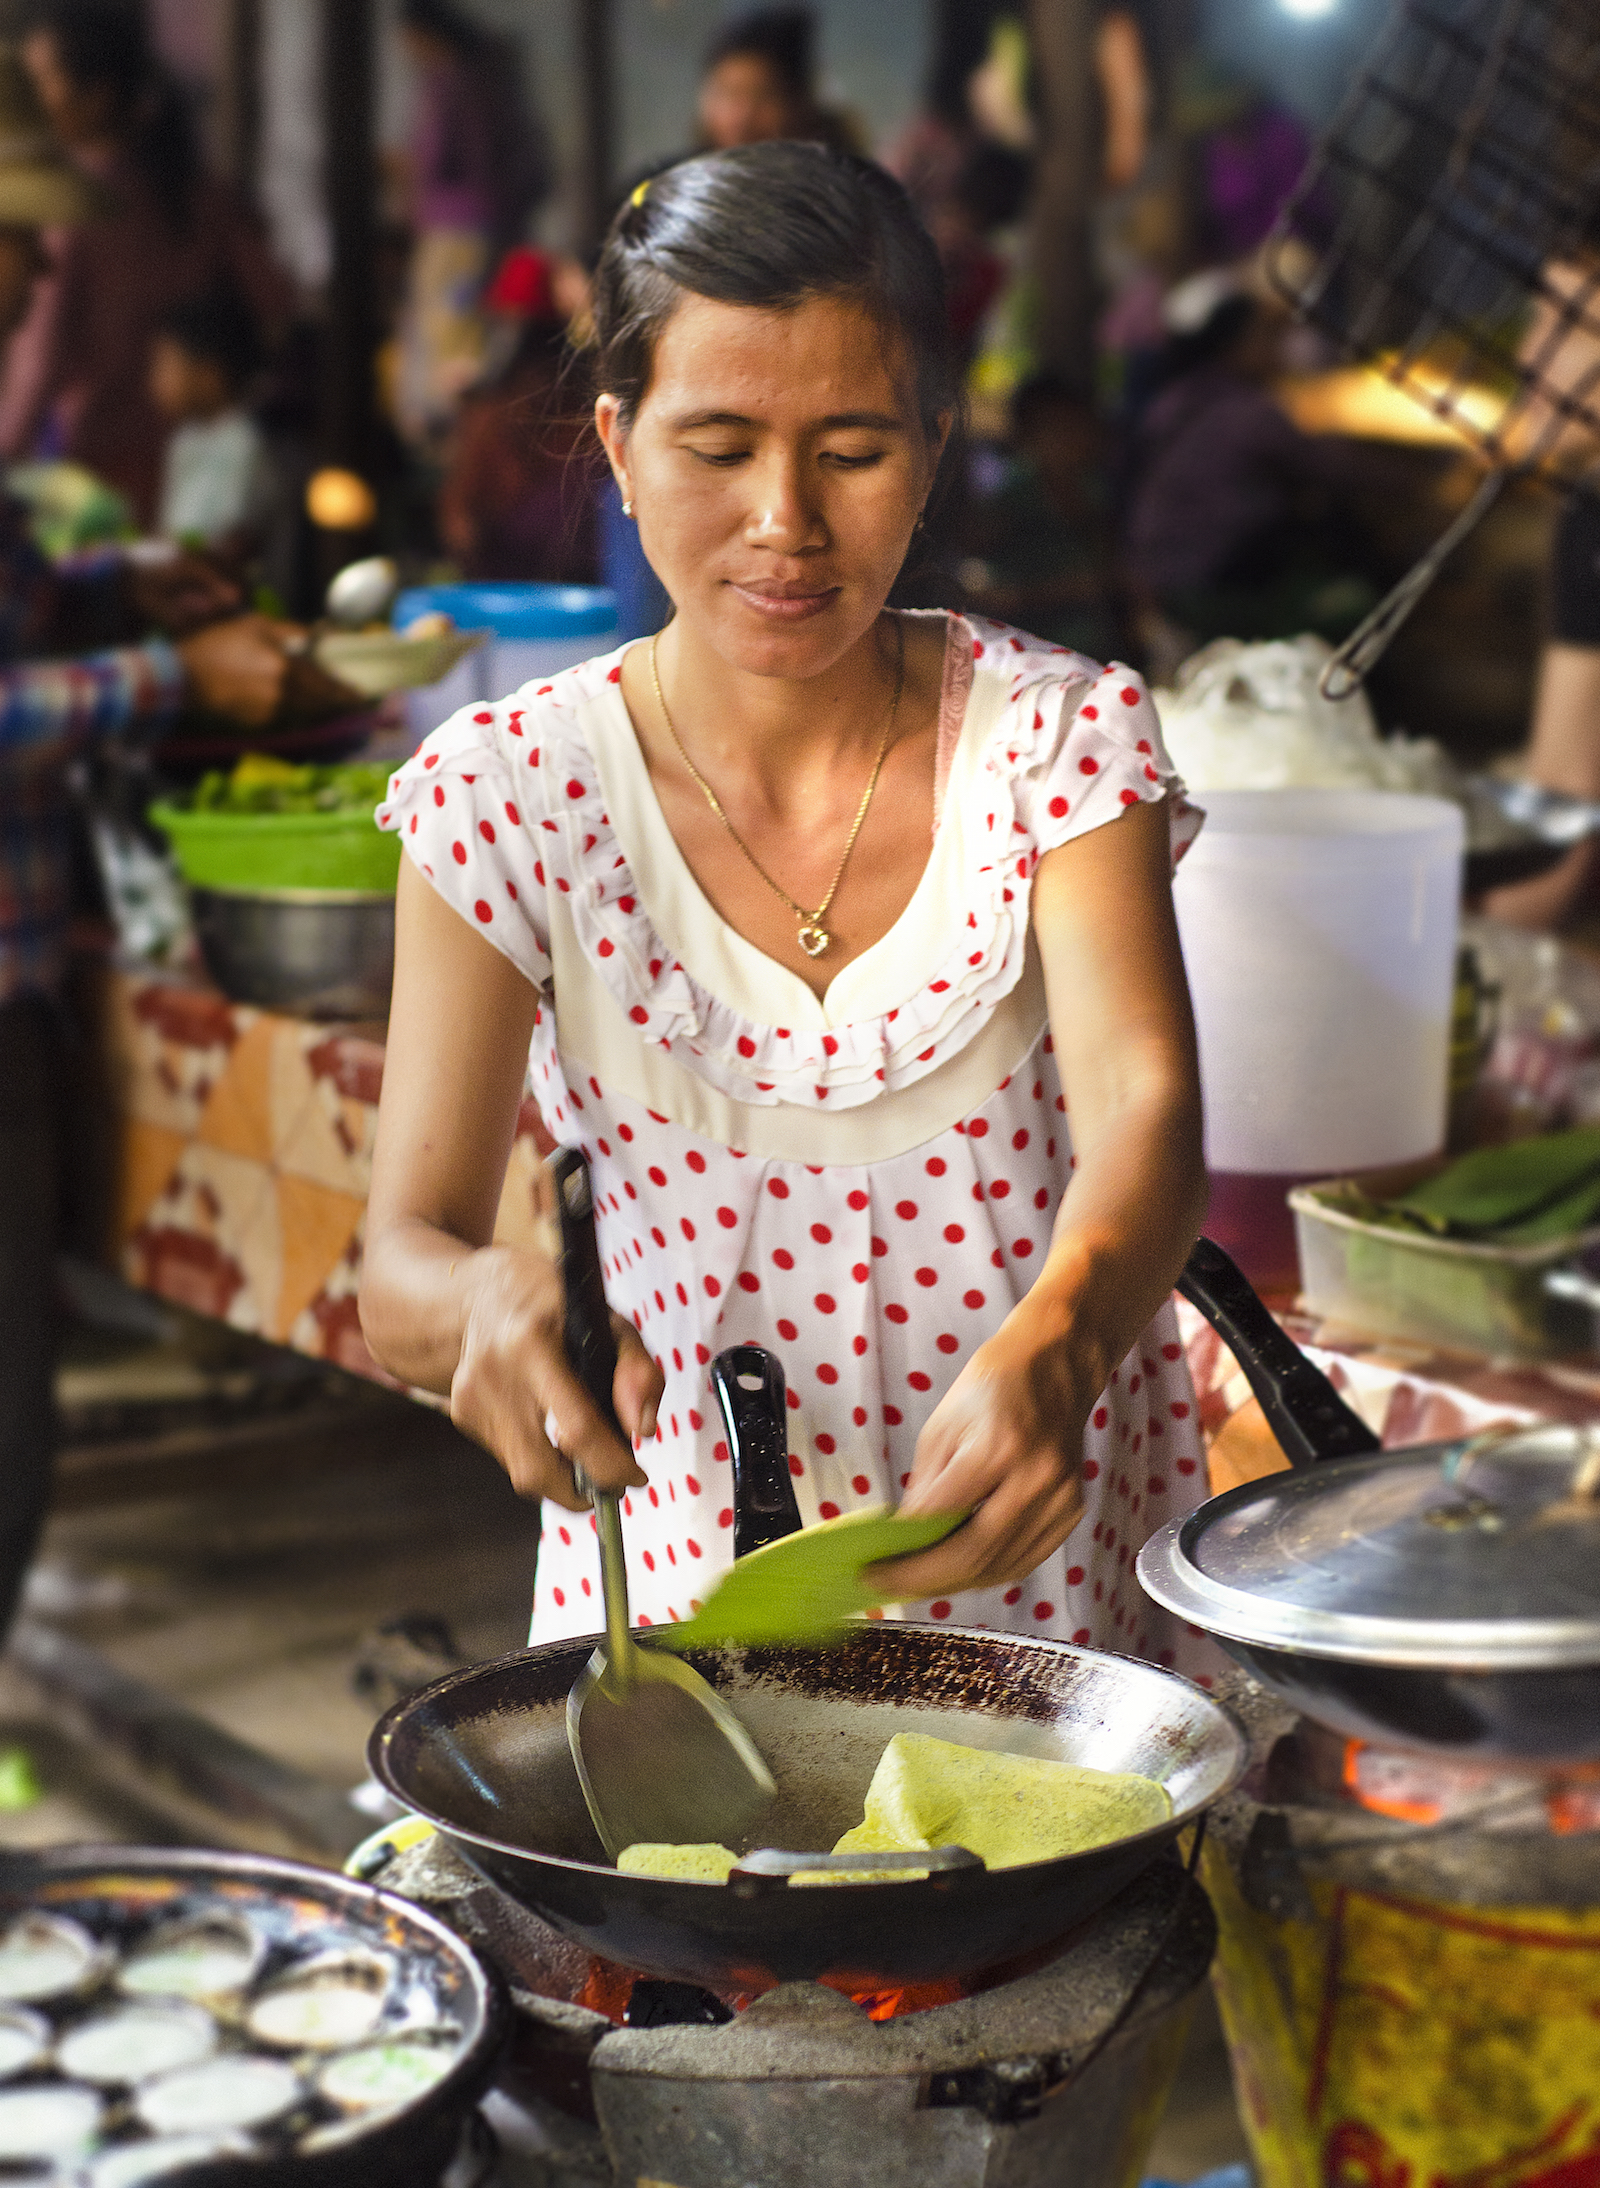 Making Banh xeo in Cambodia